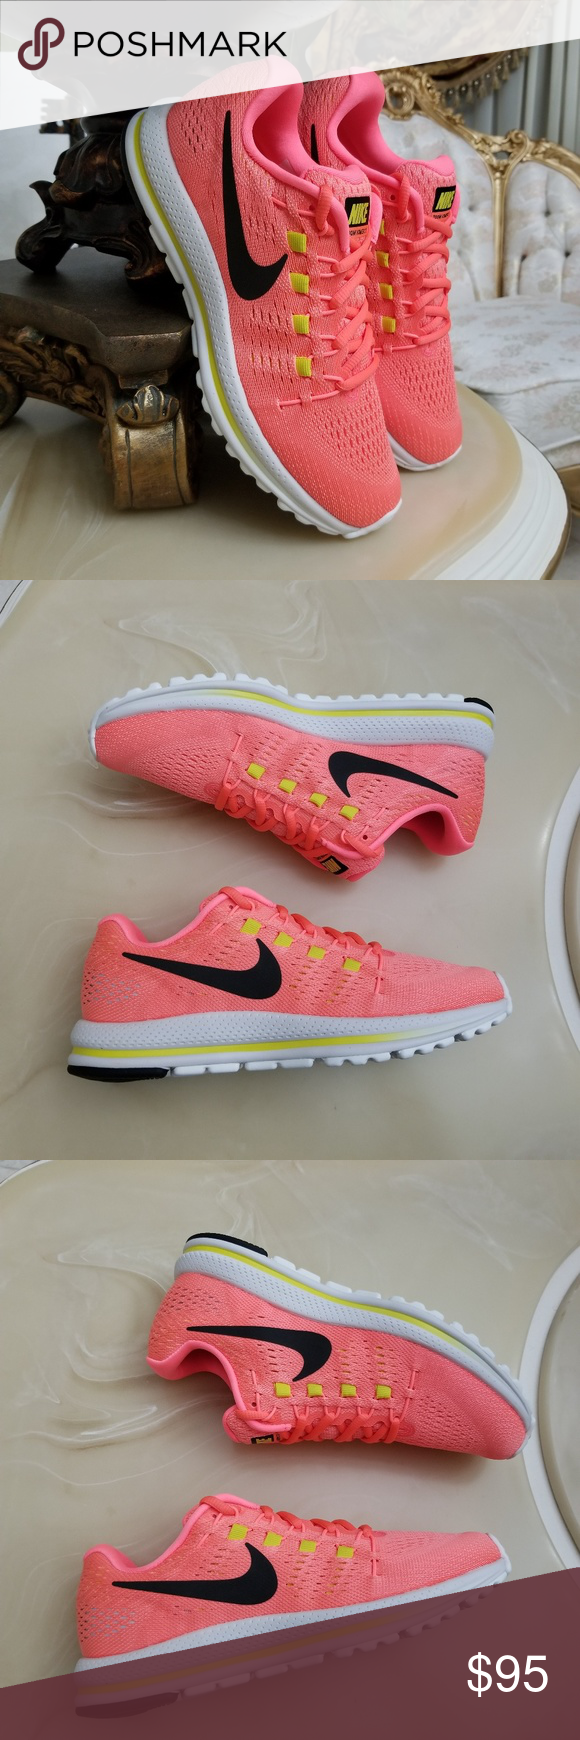 Nike Air Zoom Vomero 12 Women s Running Shoes New Without Box 6ce93db12